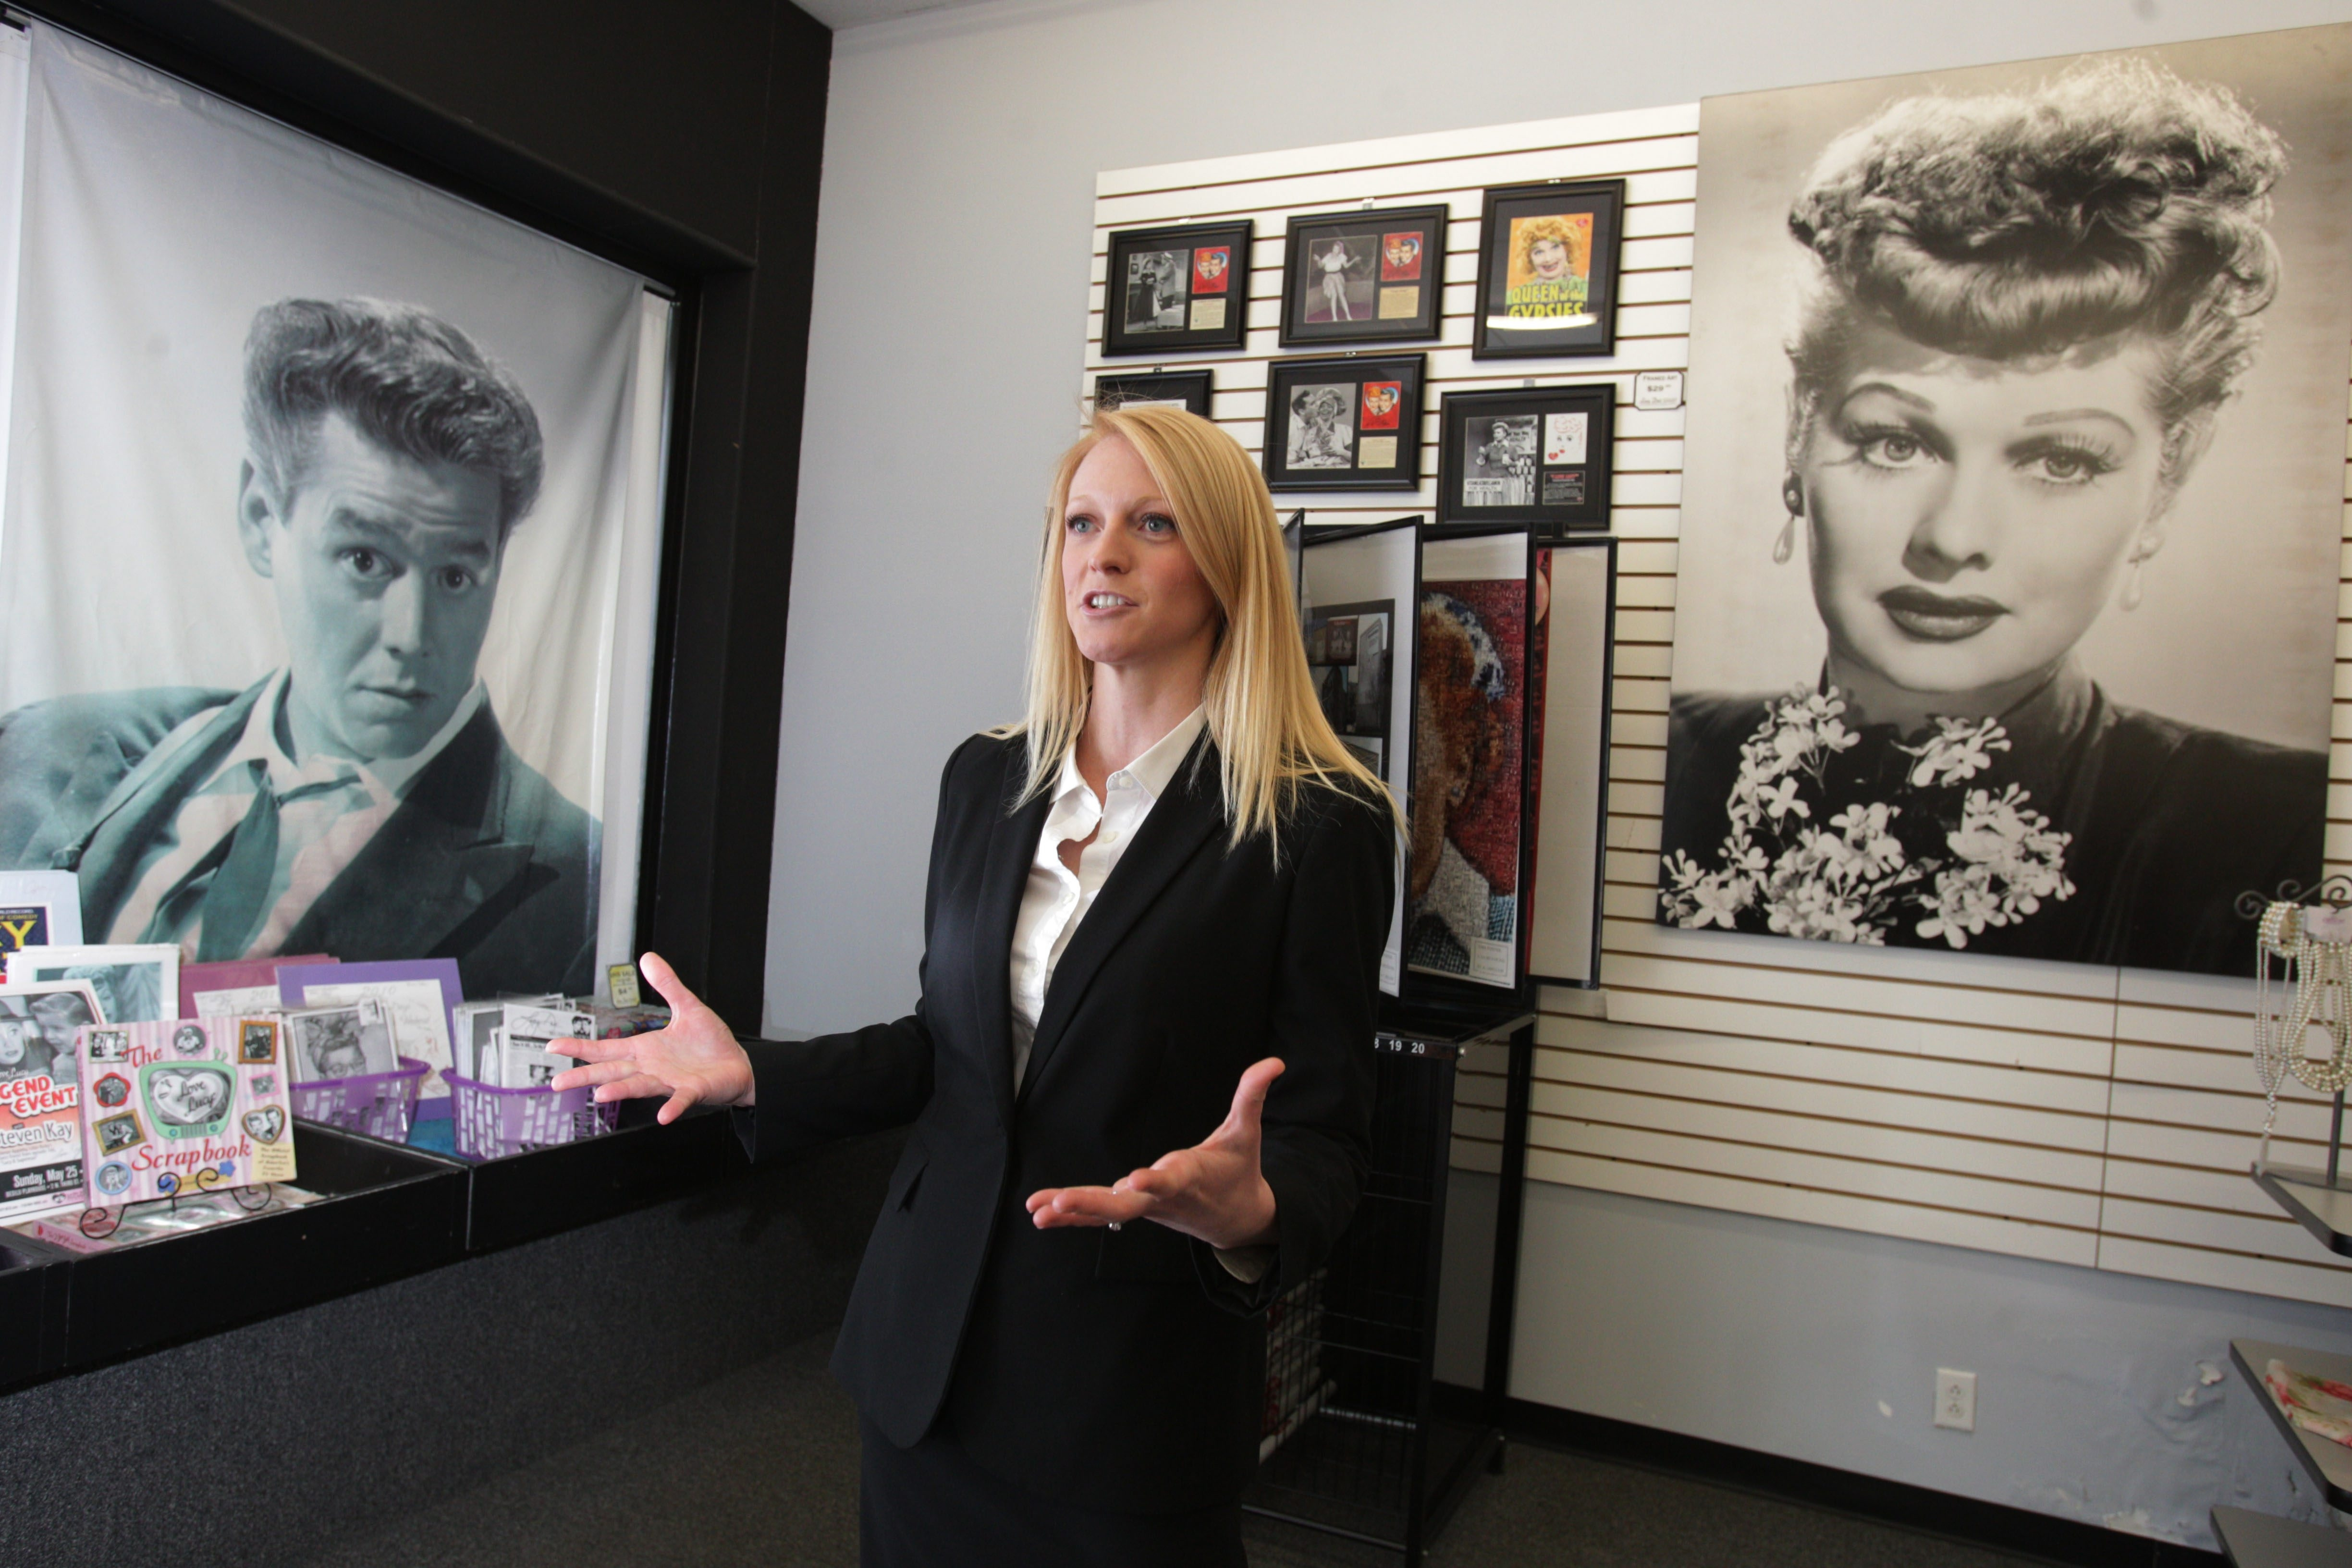 Journey L. Gunderson is executive director of Lucy Desi Museum and Comedy Center in Jamestown, as well as National Comedy Center project. State's $2.03 million award covers Erie-Lackawanna train station rehab, building construction and public plaza.